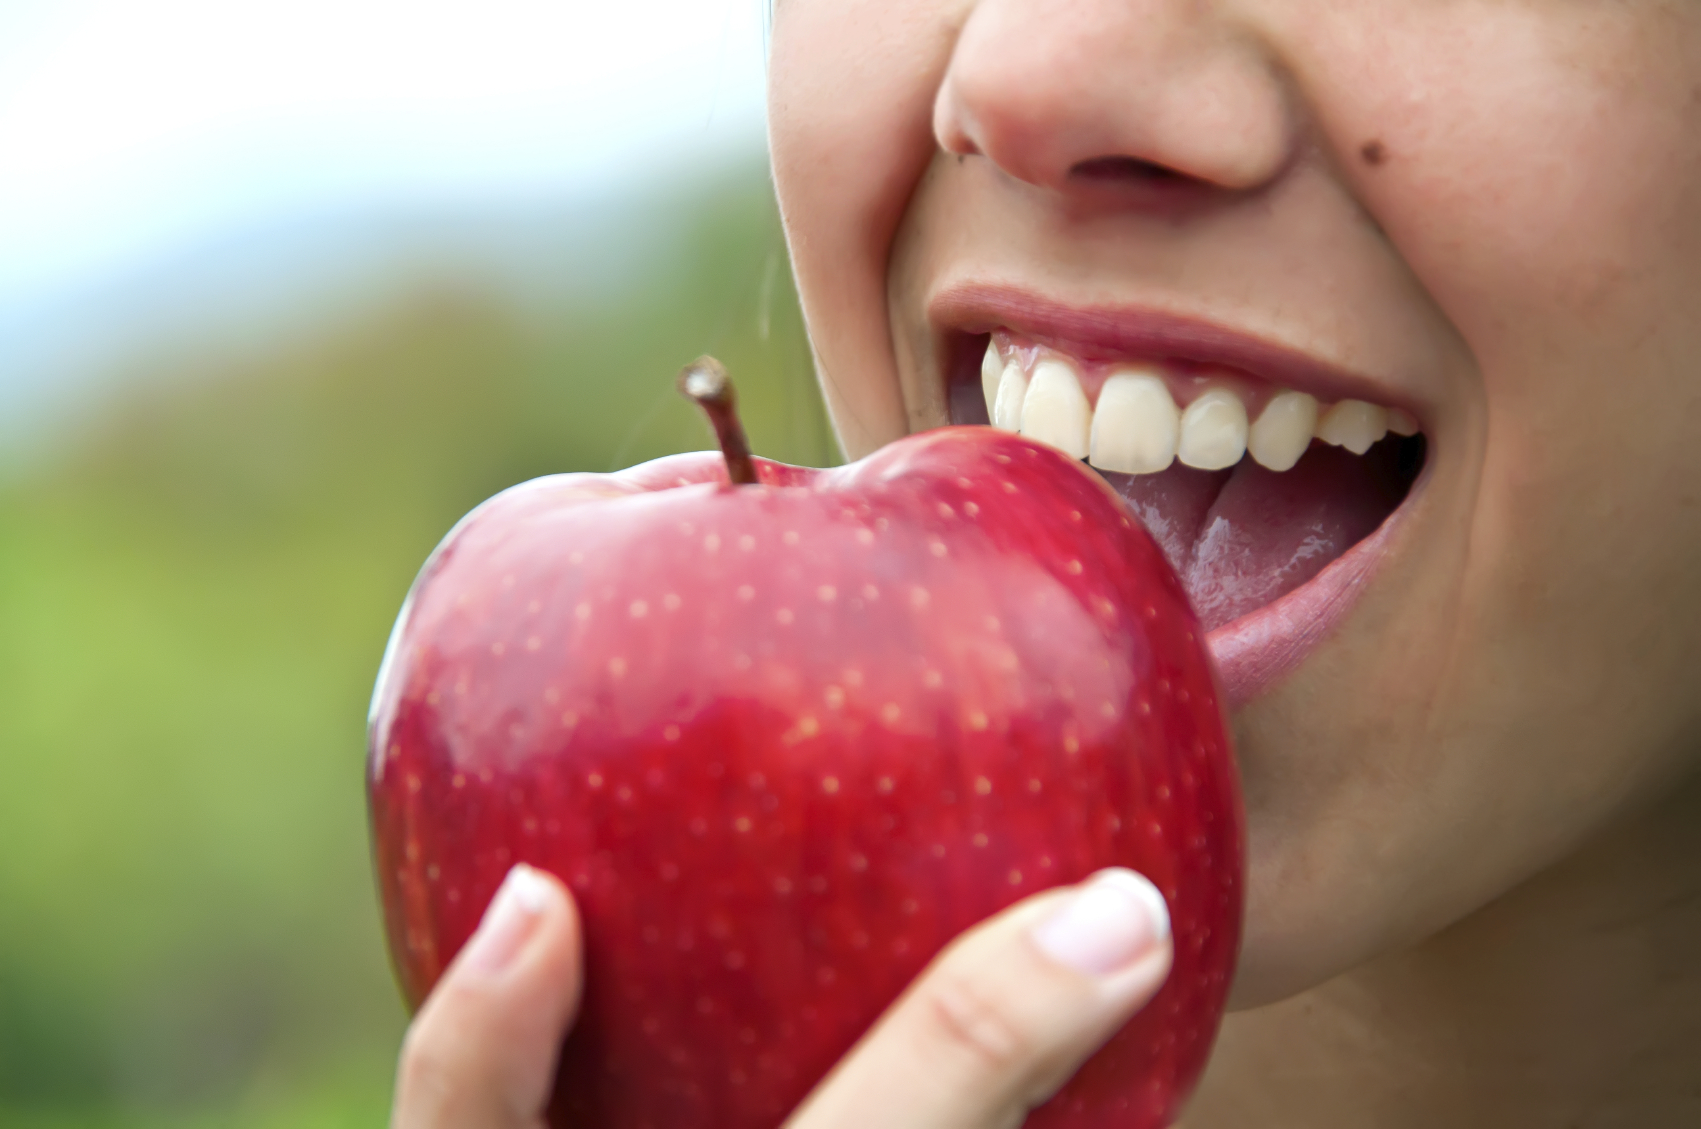 Teen eating habits may help cut breast cancer risk